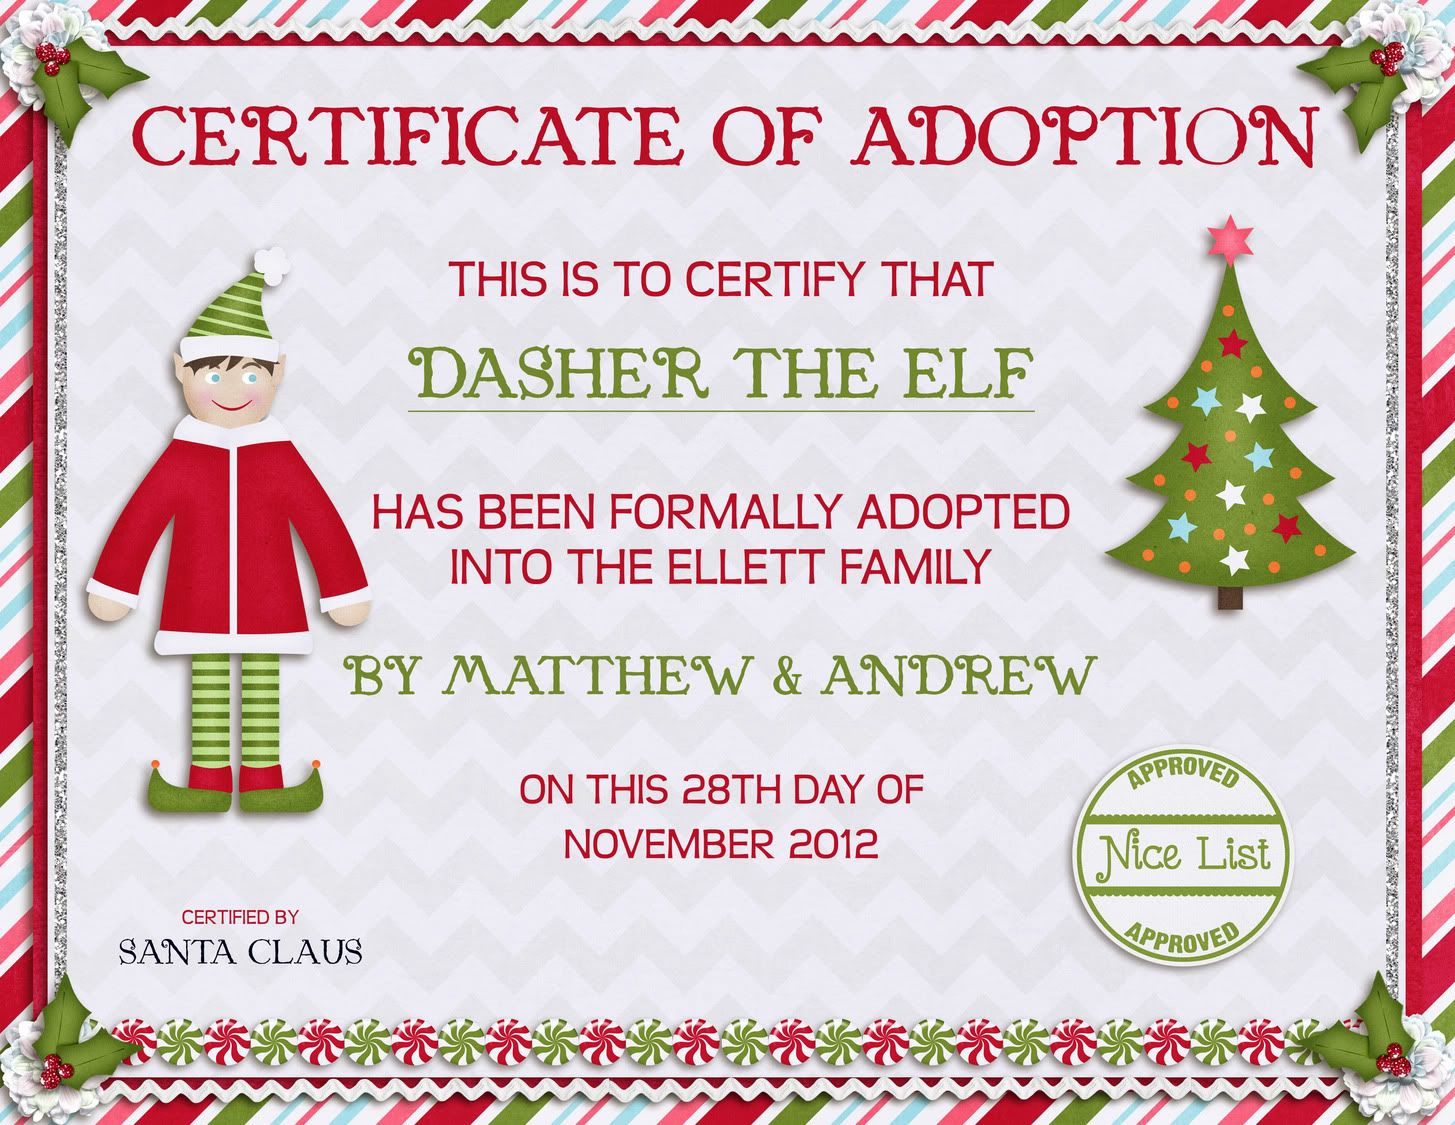 Elf on the shelf welcome latters letter from santa on dasher39s first night he39d come for Elf adoption certificate